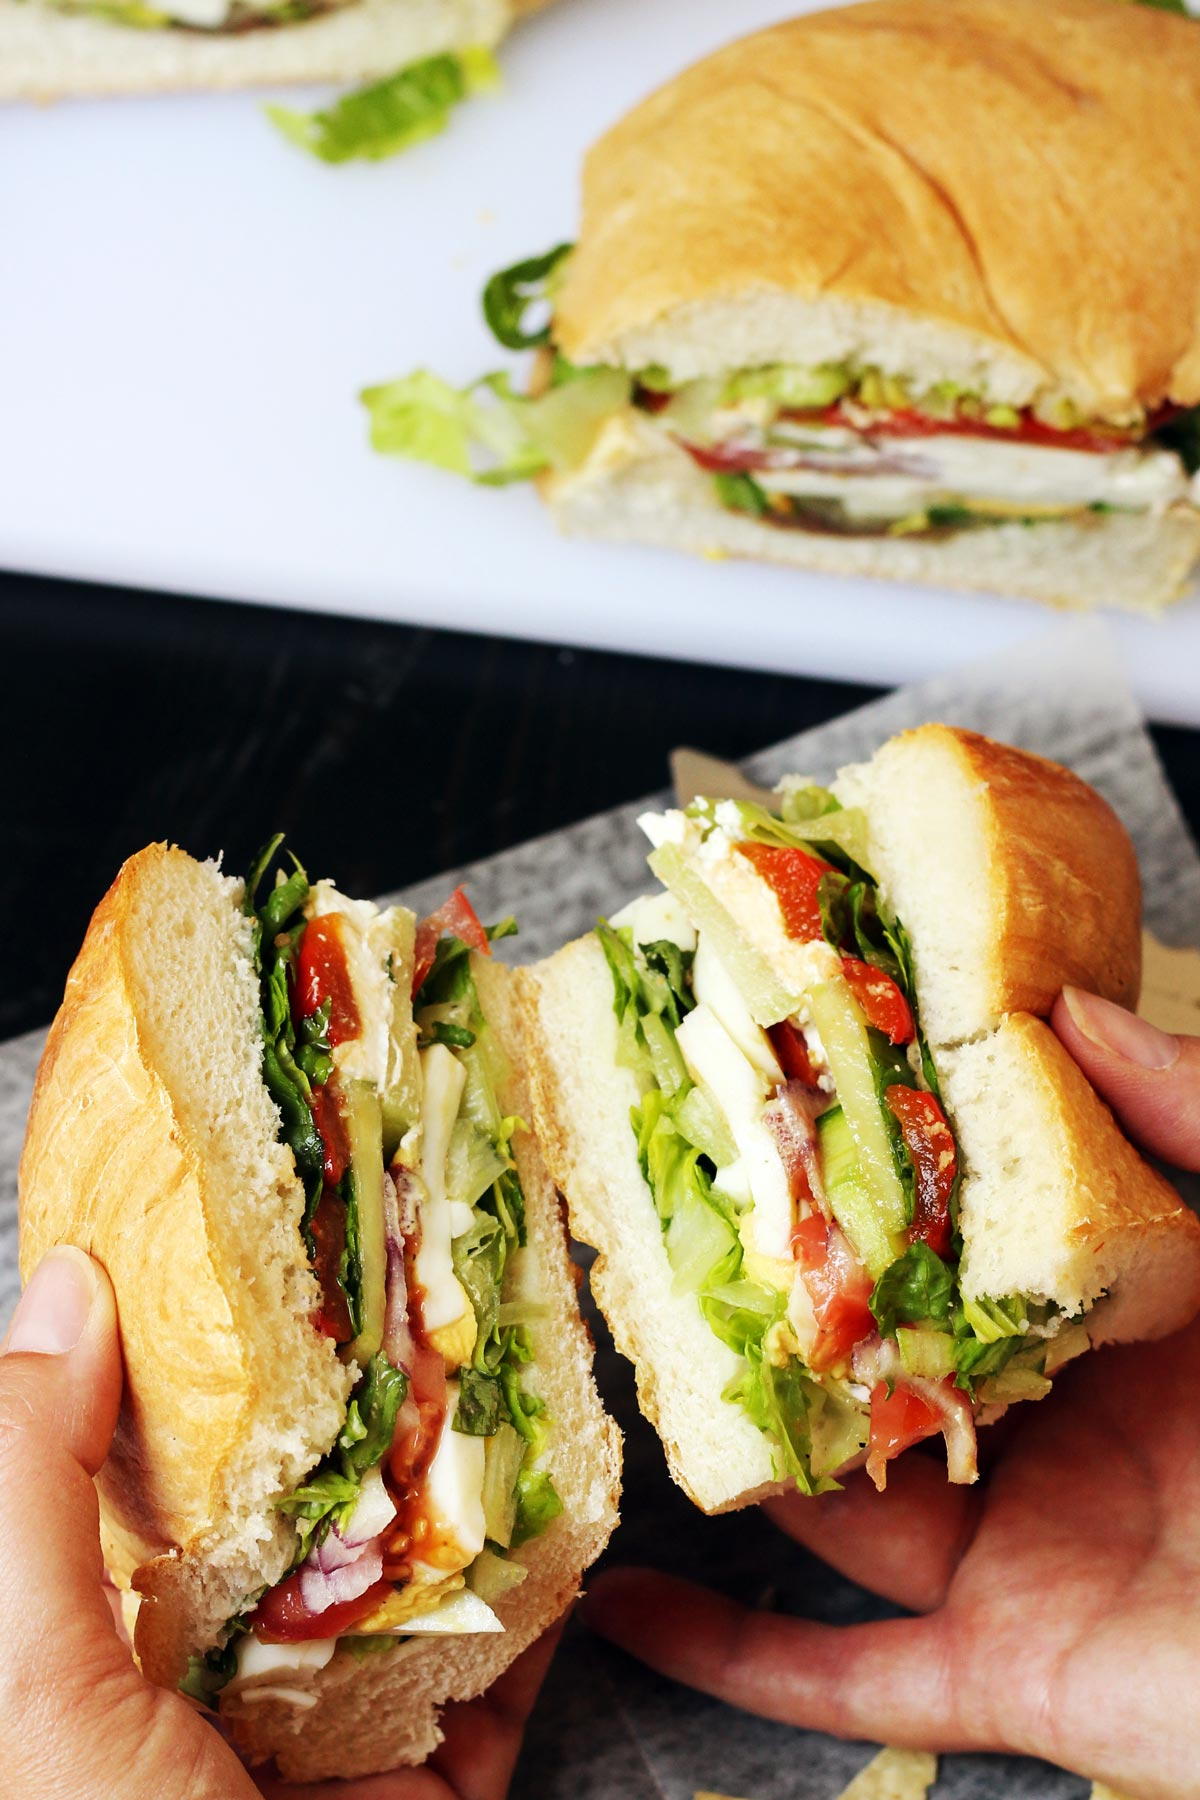 hand holding portions of picnic sandwich